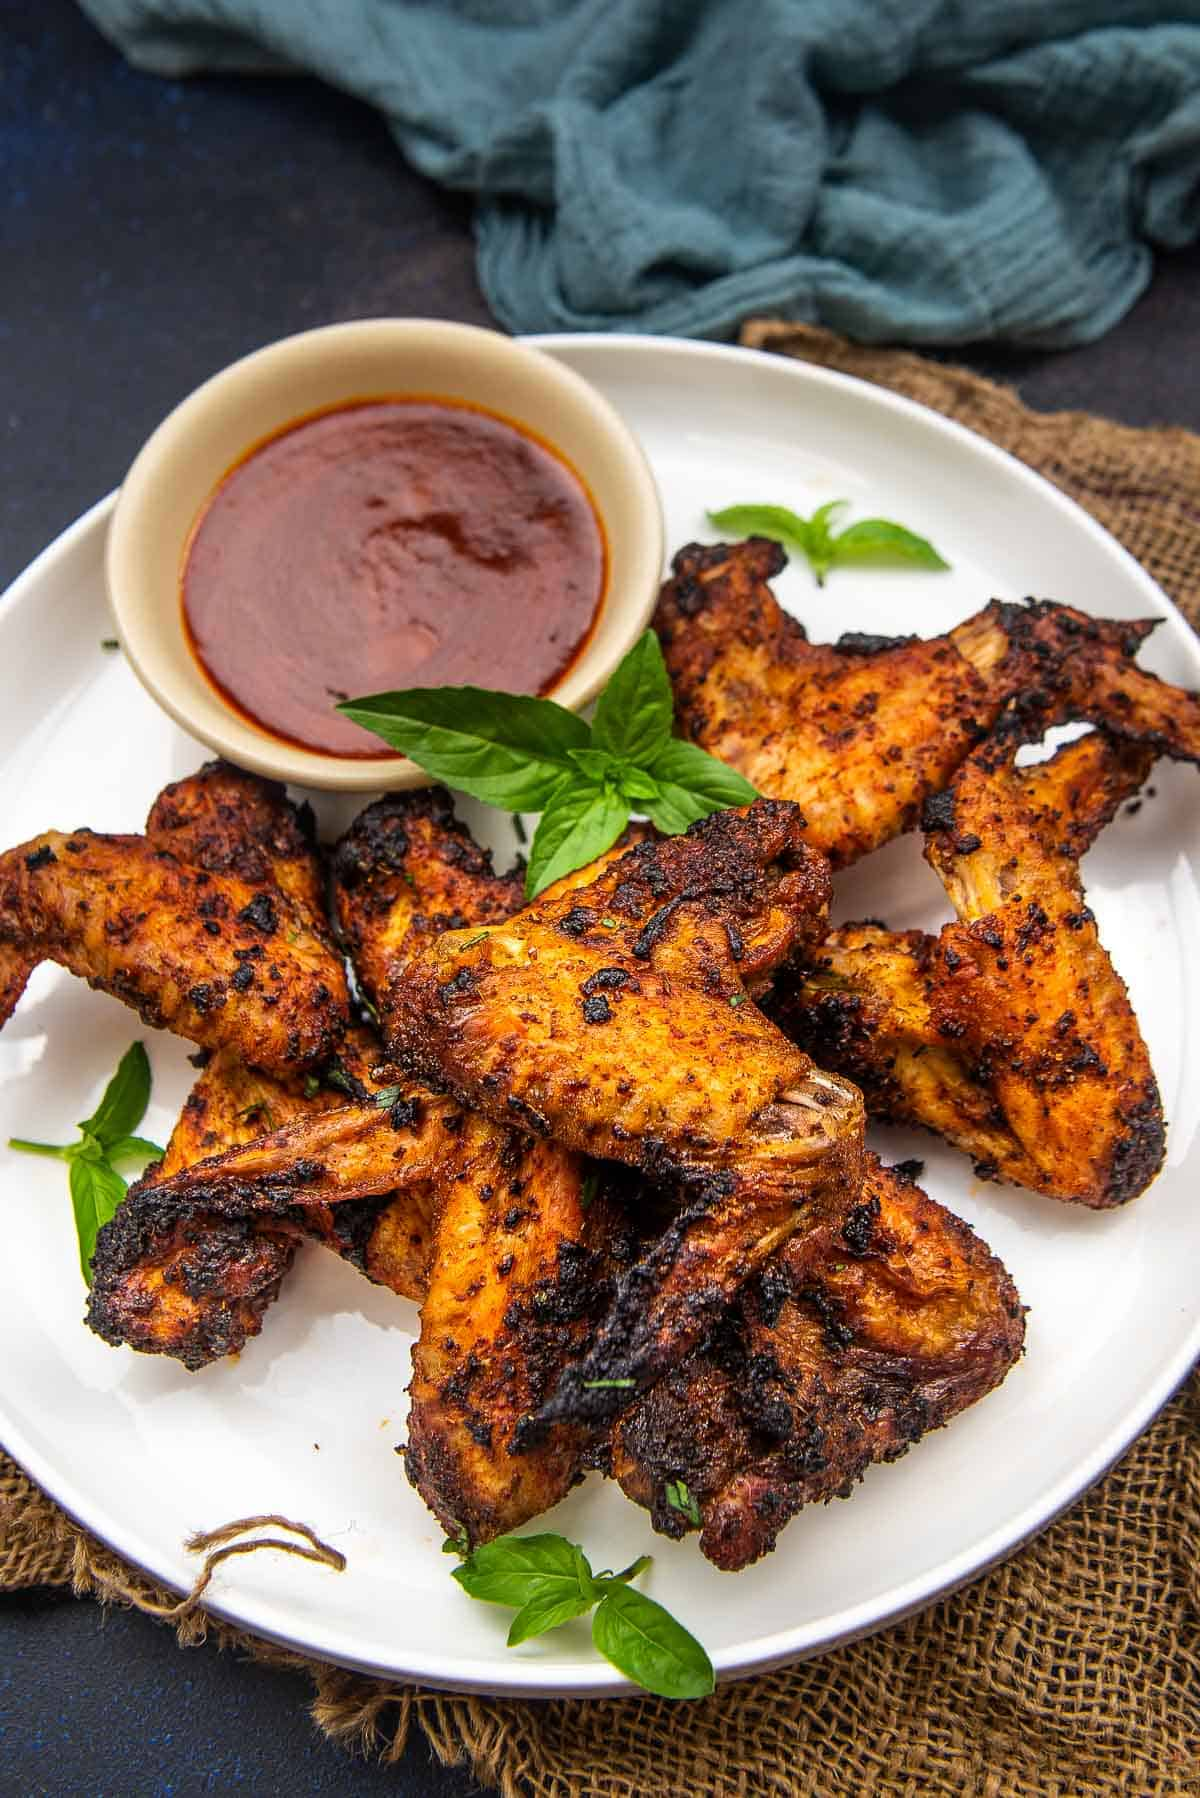 cajun wings served on a plate.